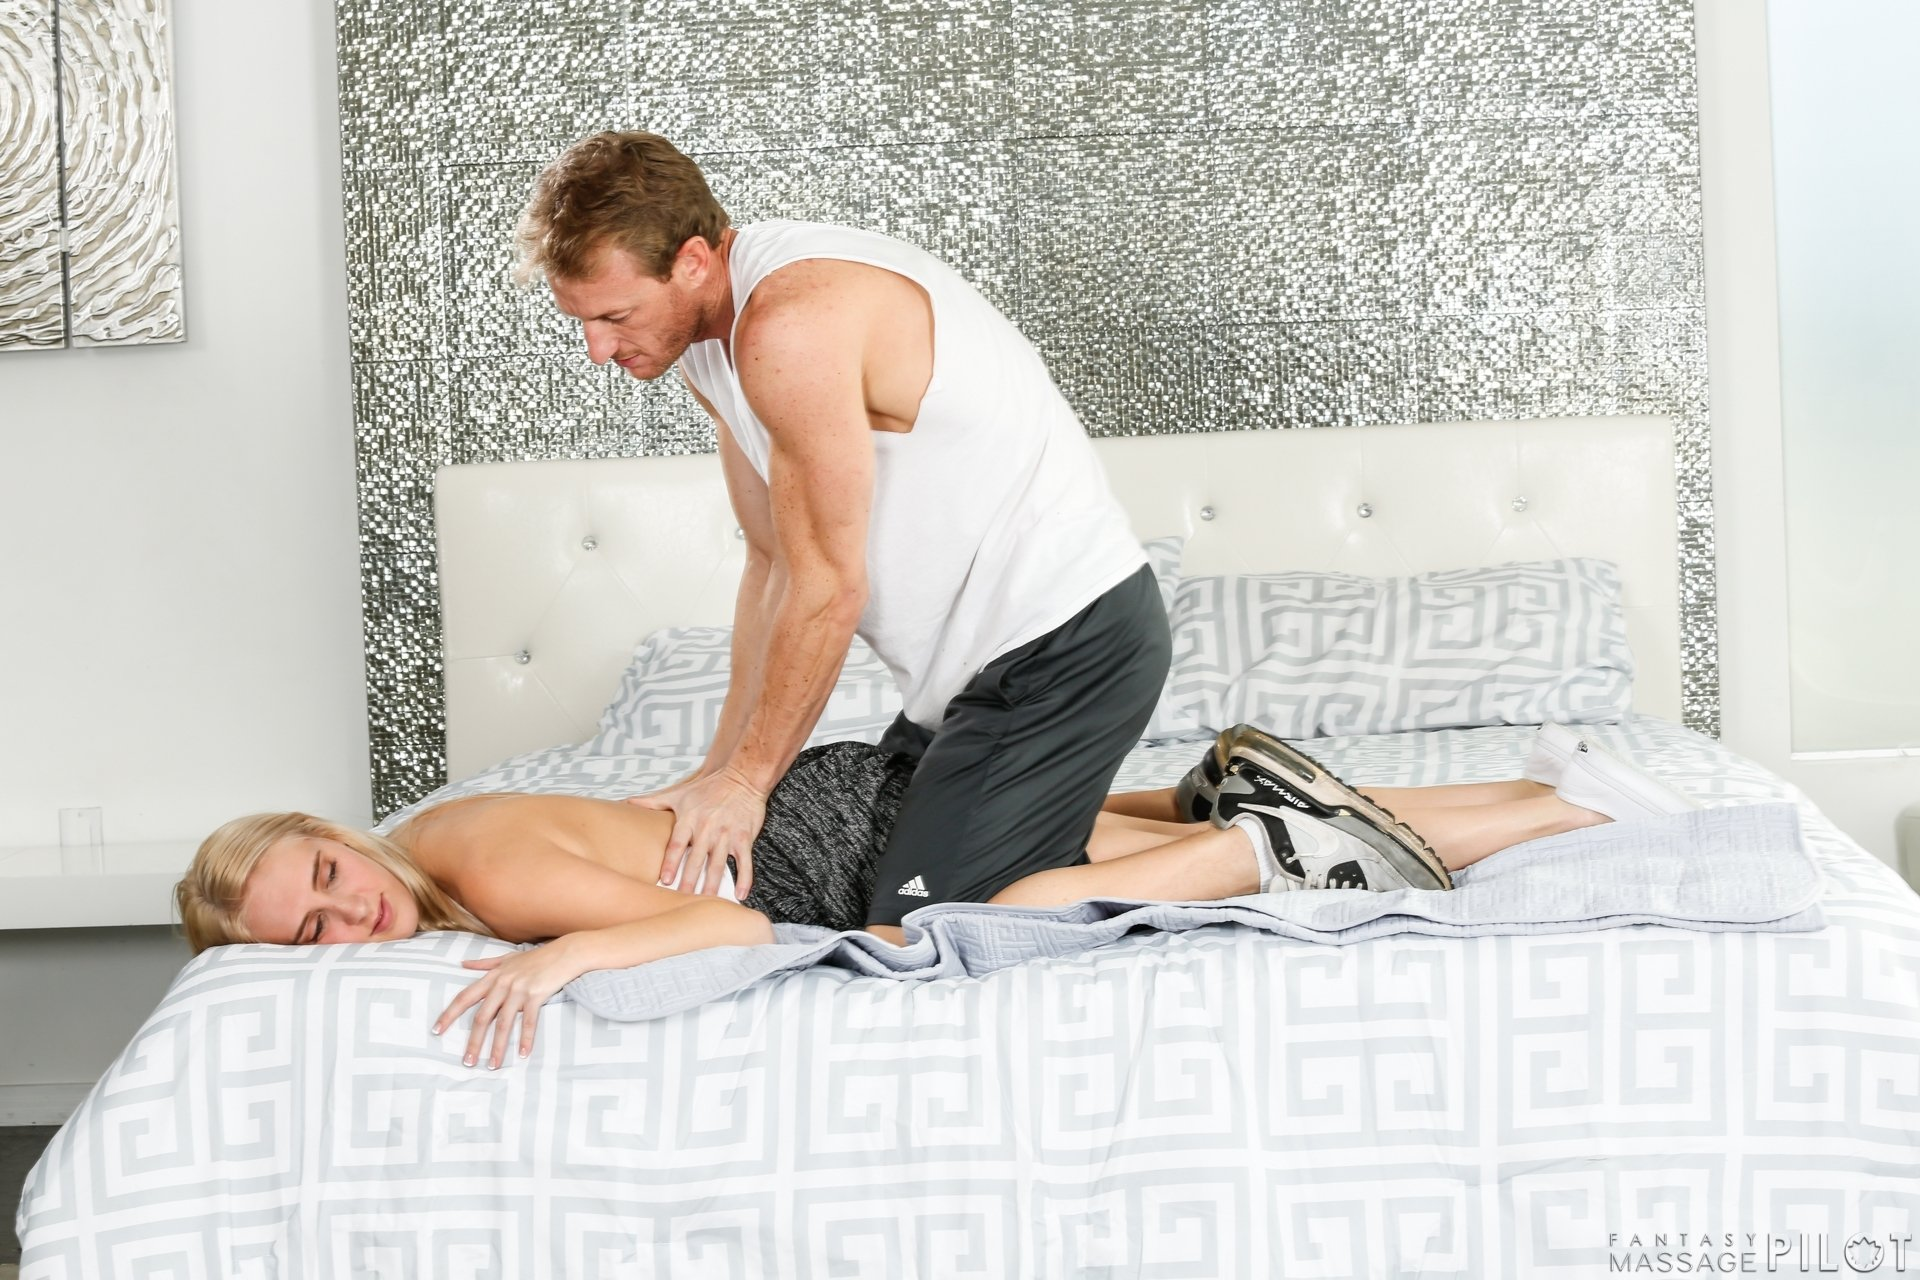 Fucks brothers wife brazzers gay porn dick riding